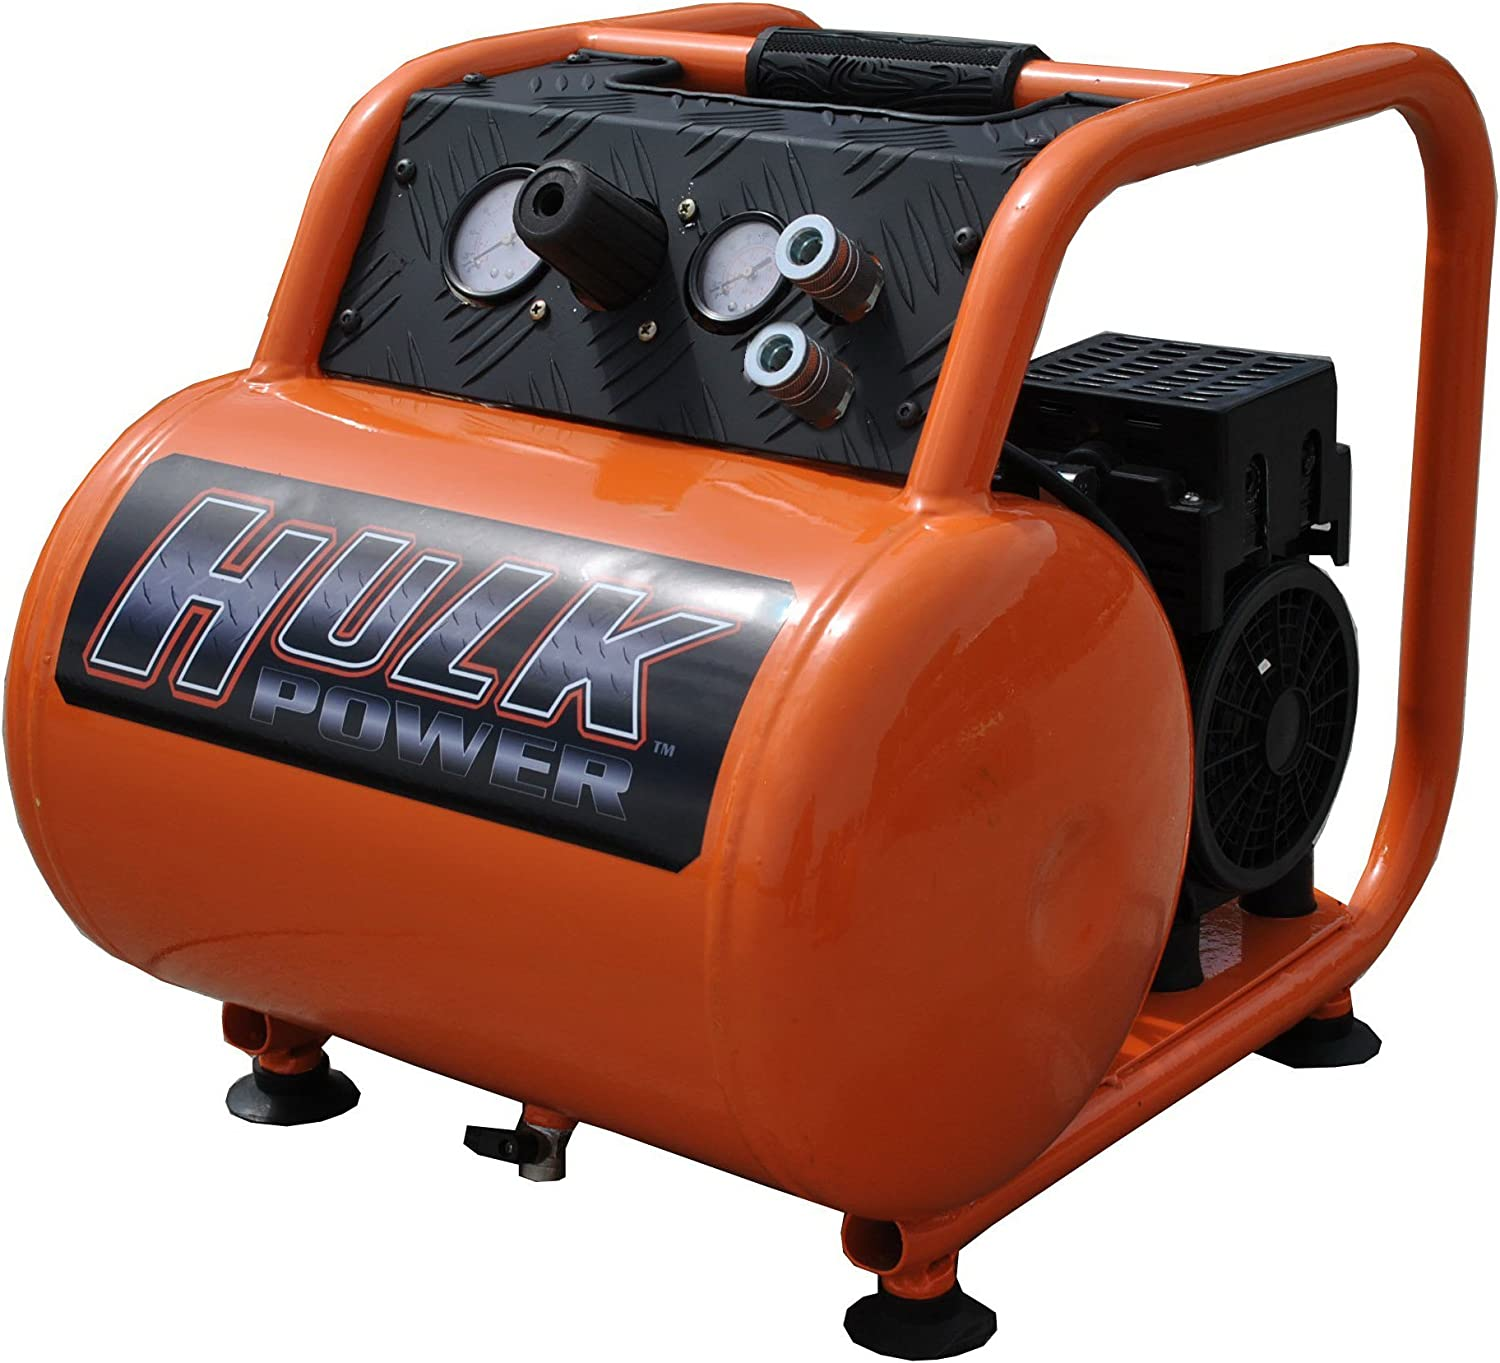 1 HP Quiet Portable Air Compressor, 125 PSI, 5 Gallon, HULK Silent Series, Model HP01P005SS by EMAX Compressor